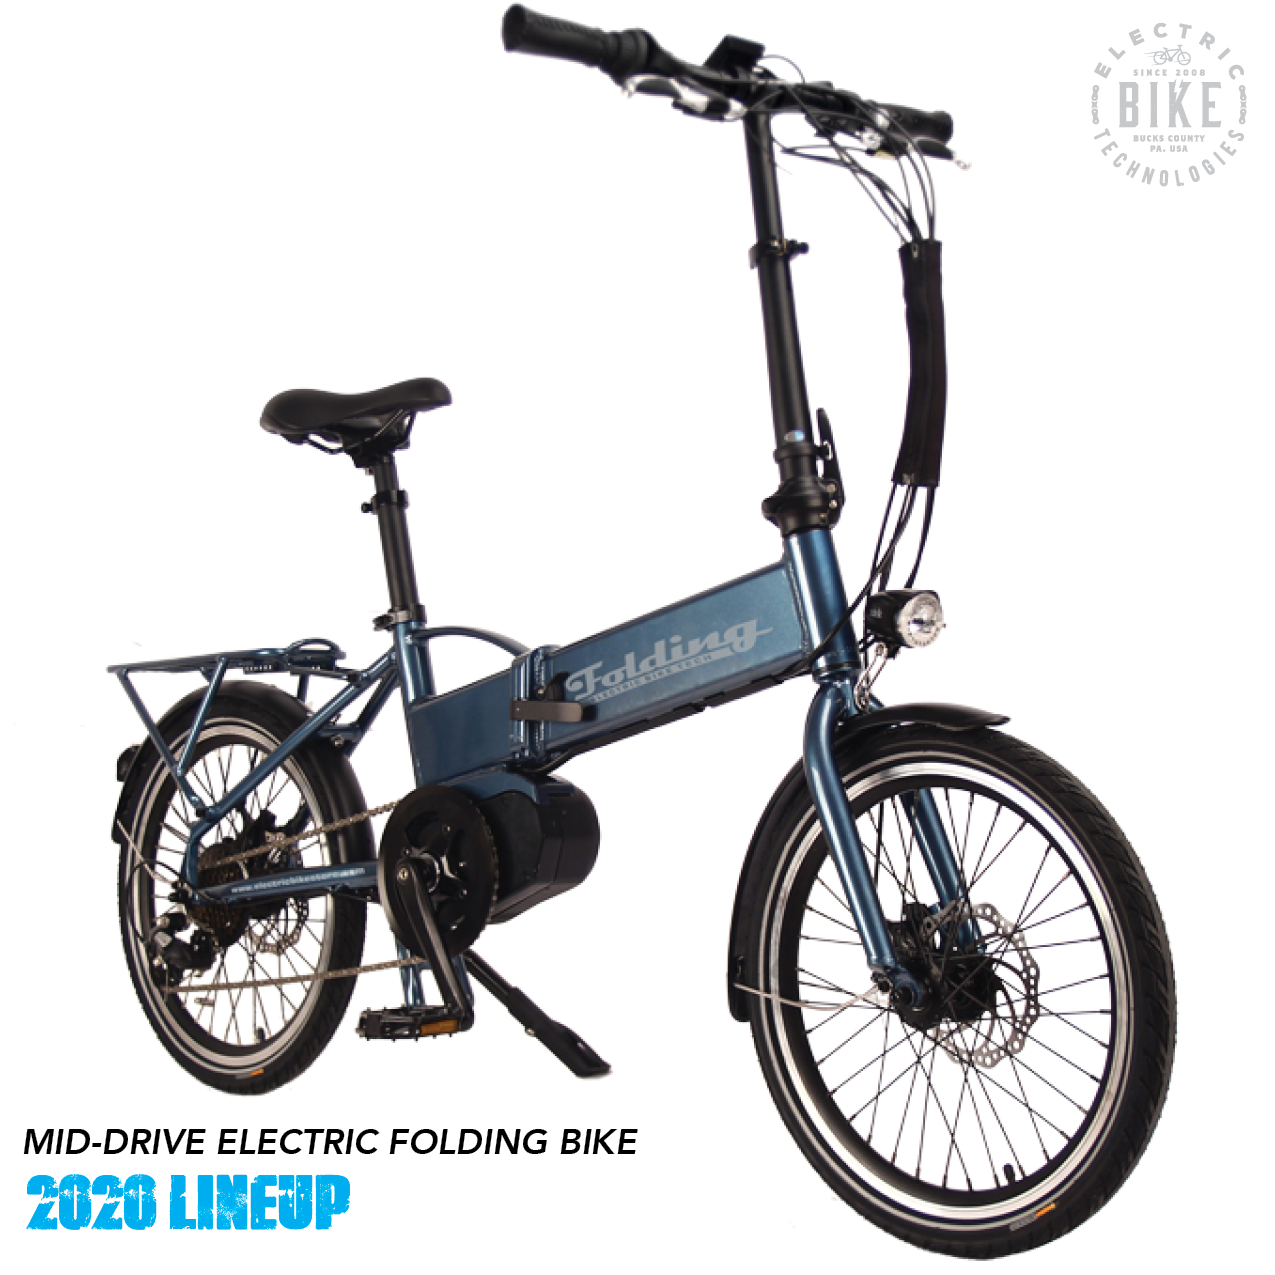 Compact And Powerful The Mid Drive Electric Folding Bike Easily